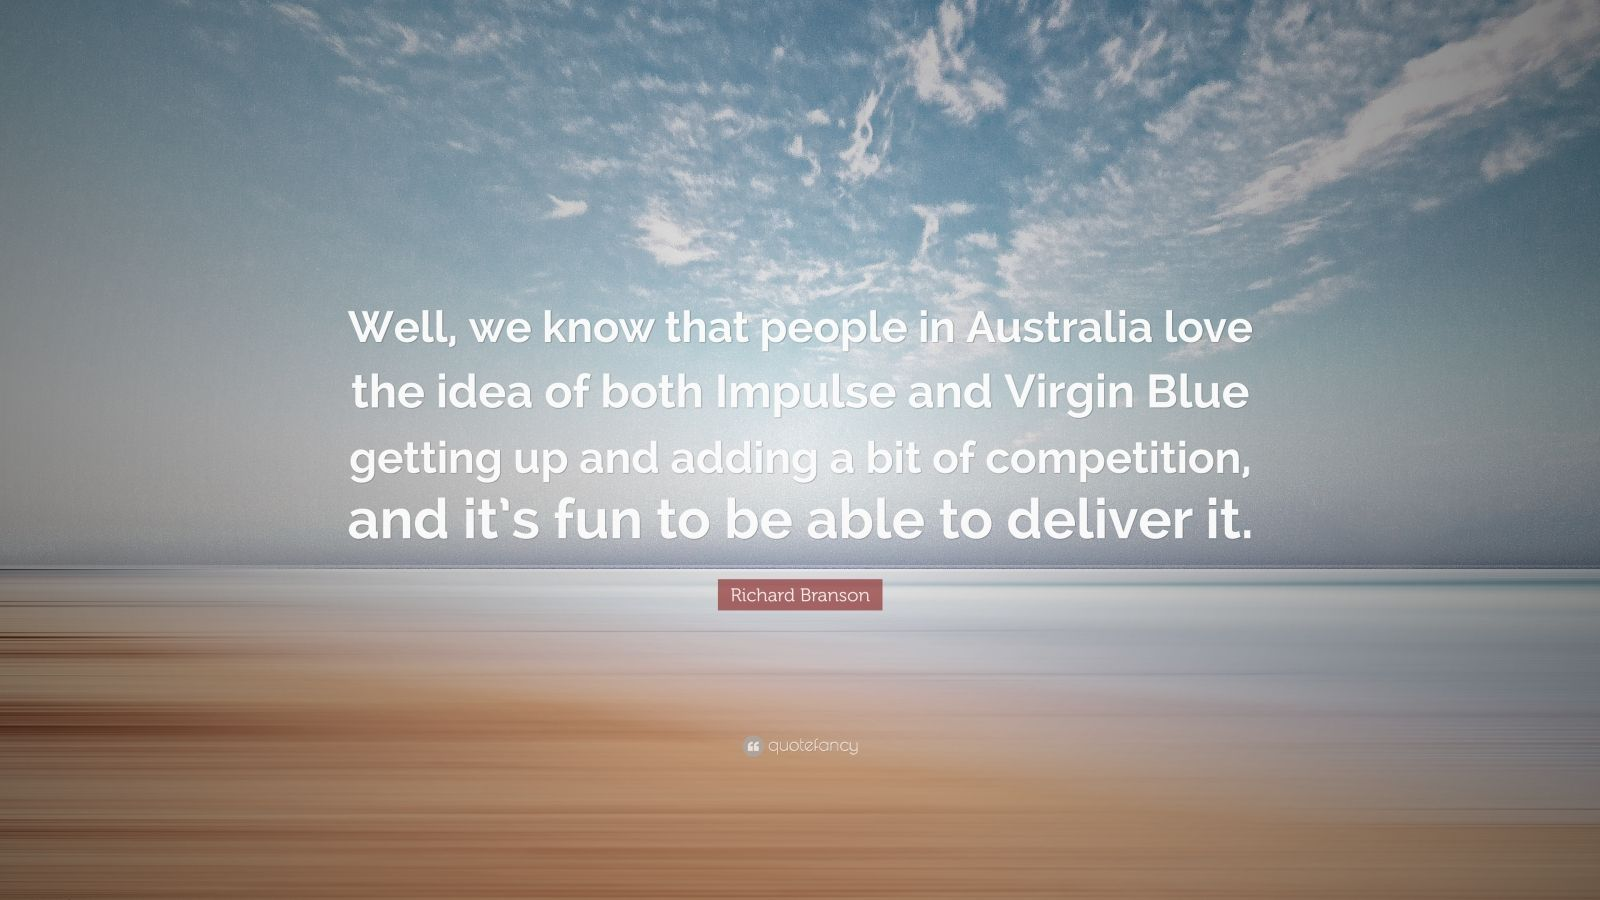 """Richard Branson Quote: """"Well, we know that people in Australia love the idea of both Impulse and Virgin Blue getting up and adding a bit of competition, and it's fun to be able to deliver it."""""""